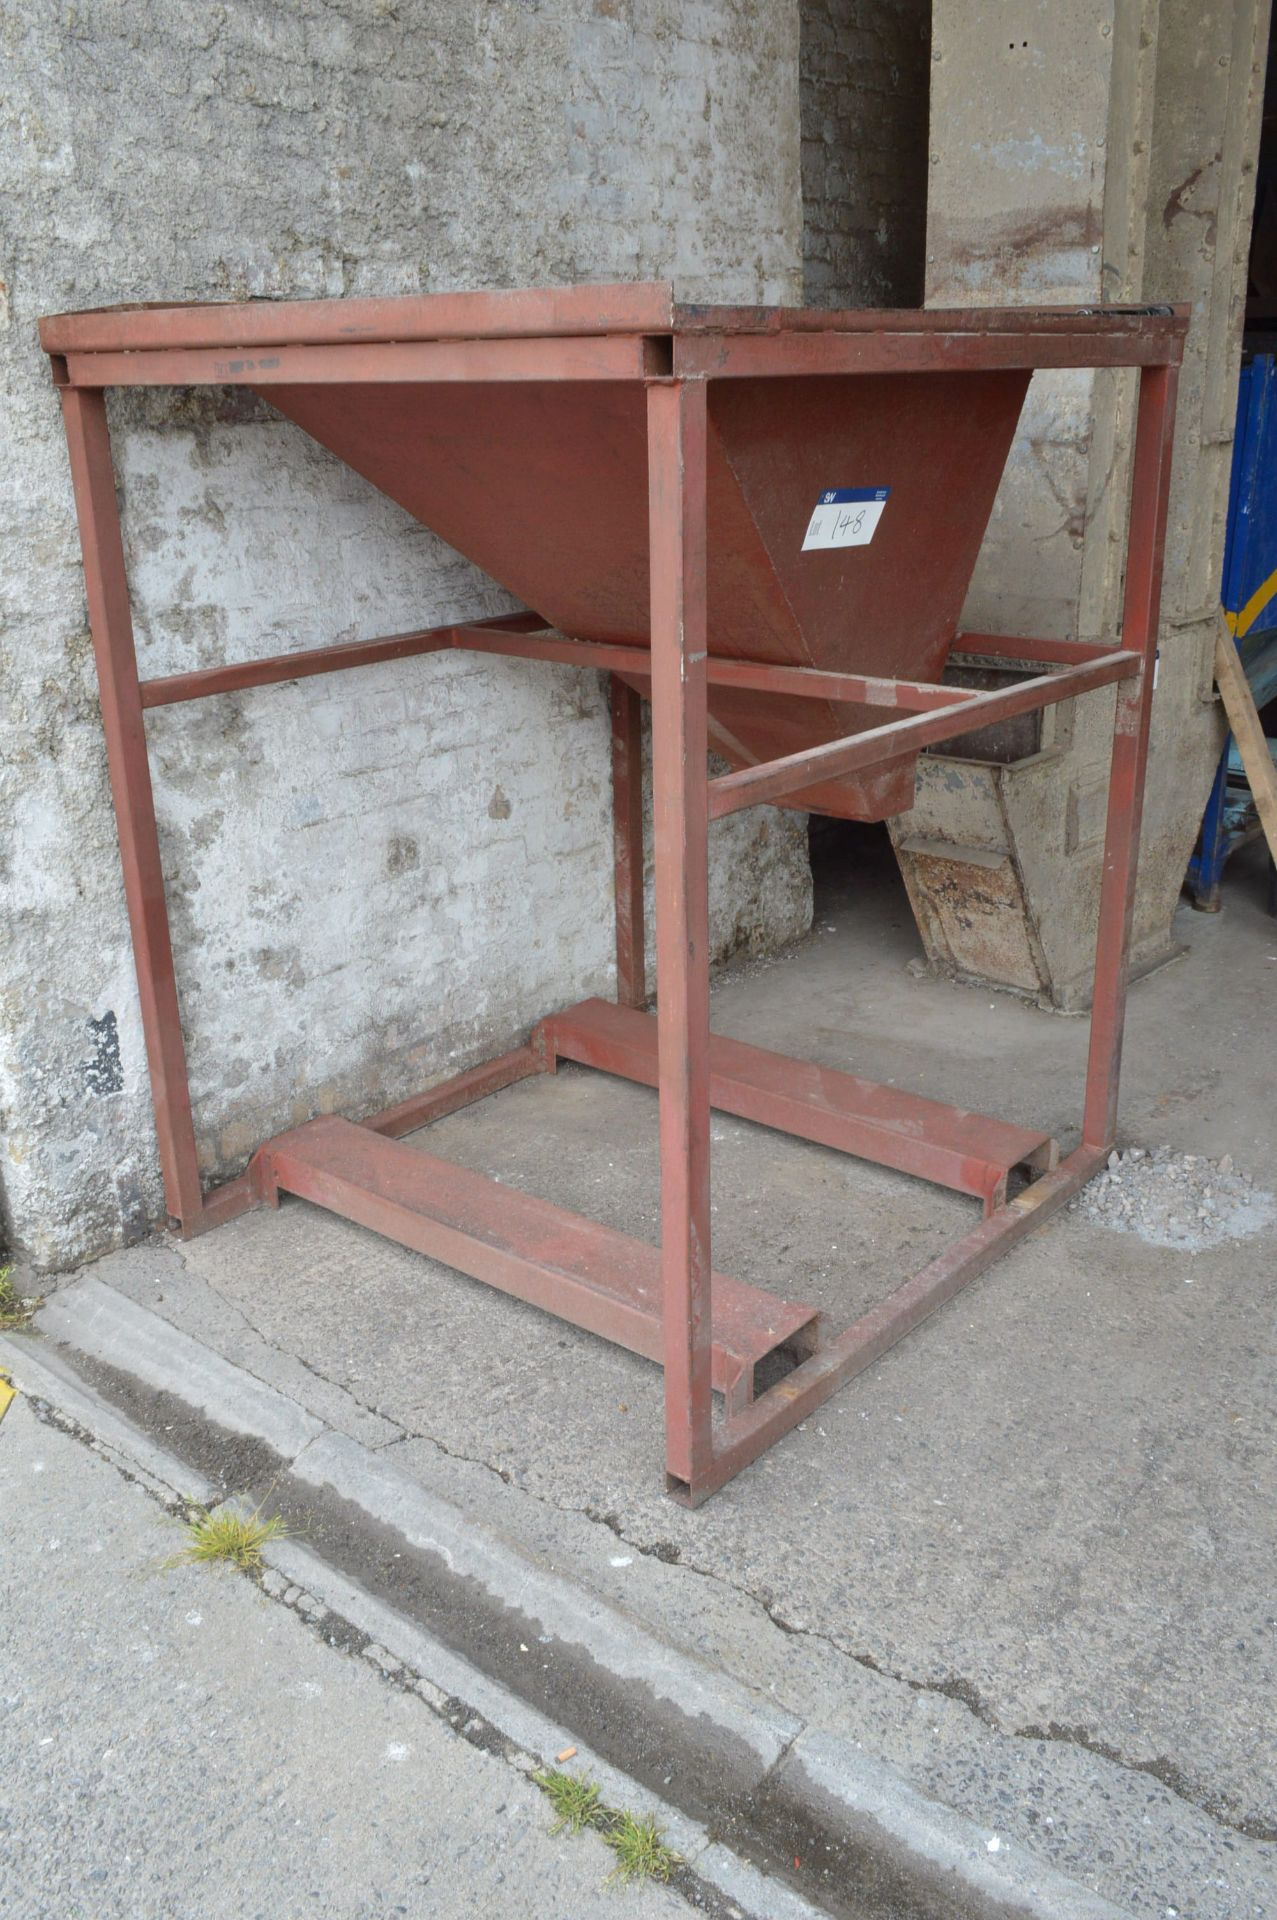 Lot 148 - Tote Bin Emptying Stand, 1.4m x 1.3m, with hopper and fork lift channels